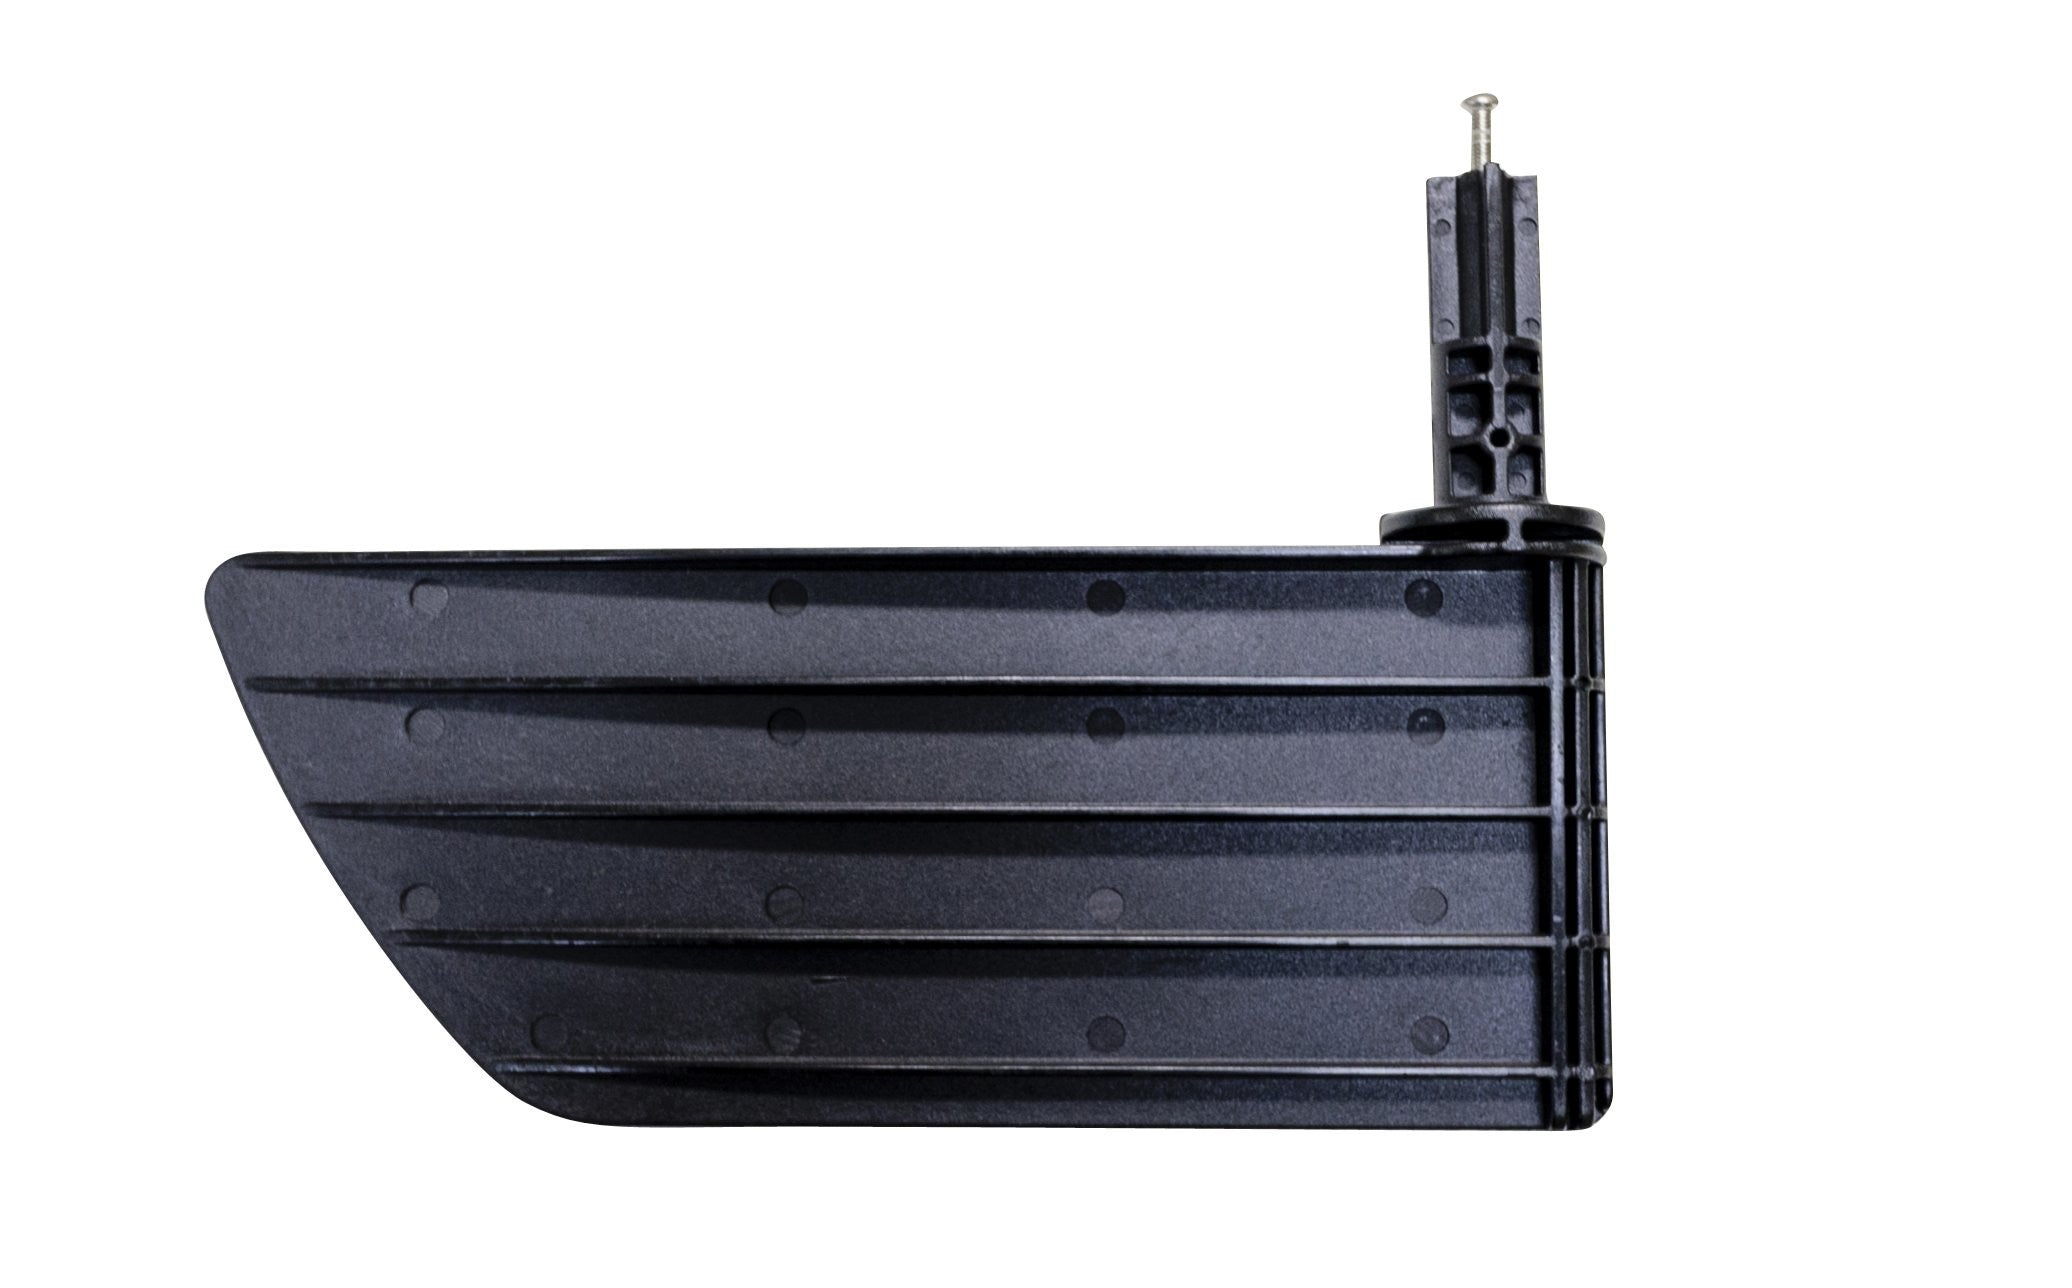 Replacement rudder for Pedal Kayaks PK11, PK13 and PK14 - Brooklyn Kayak Company